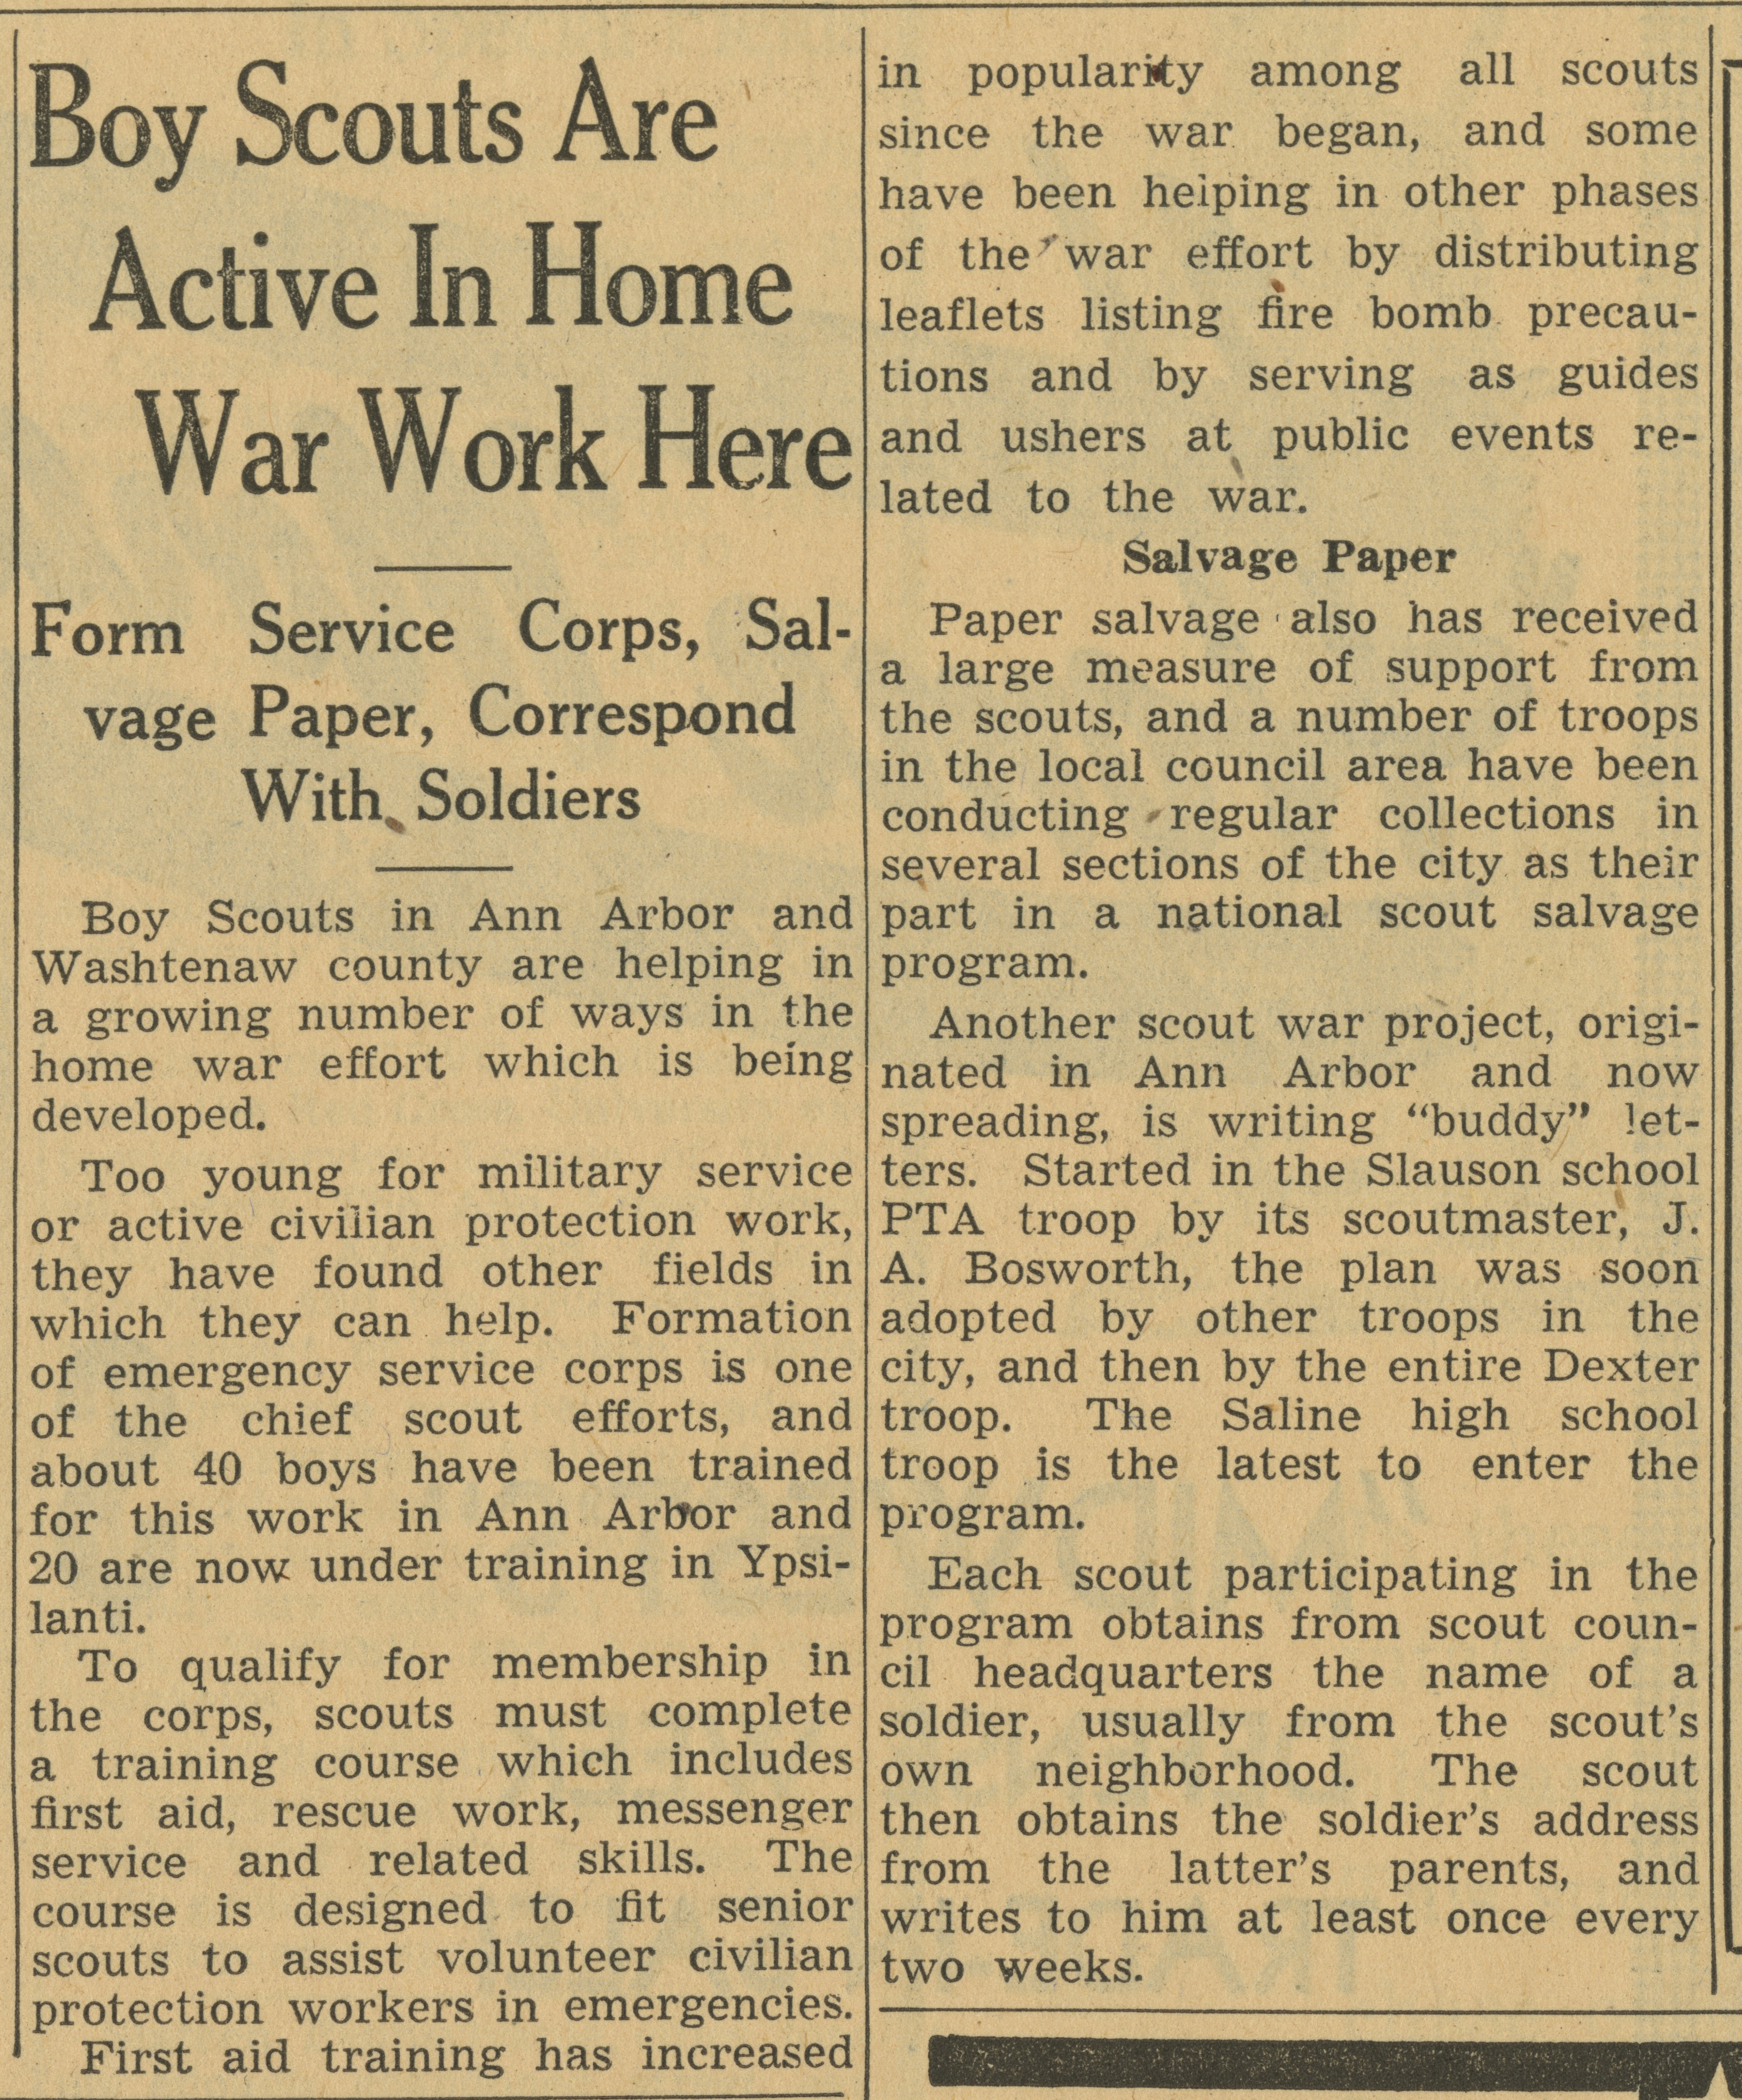 Boy Scouts Are Active In Home War Work Here image